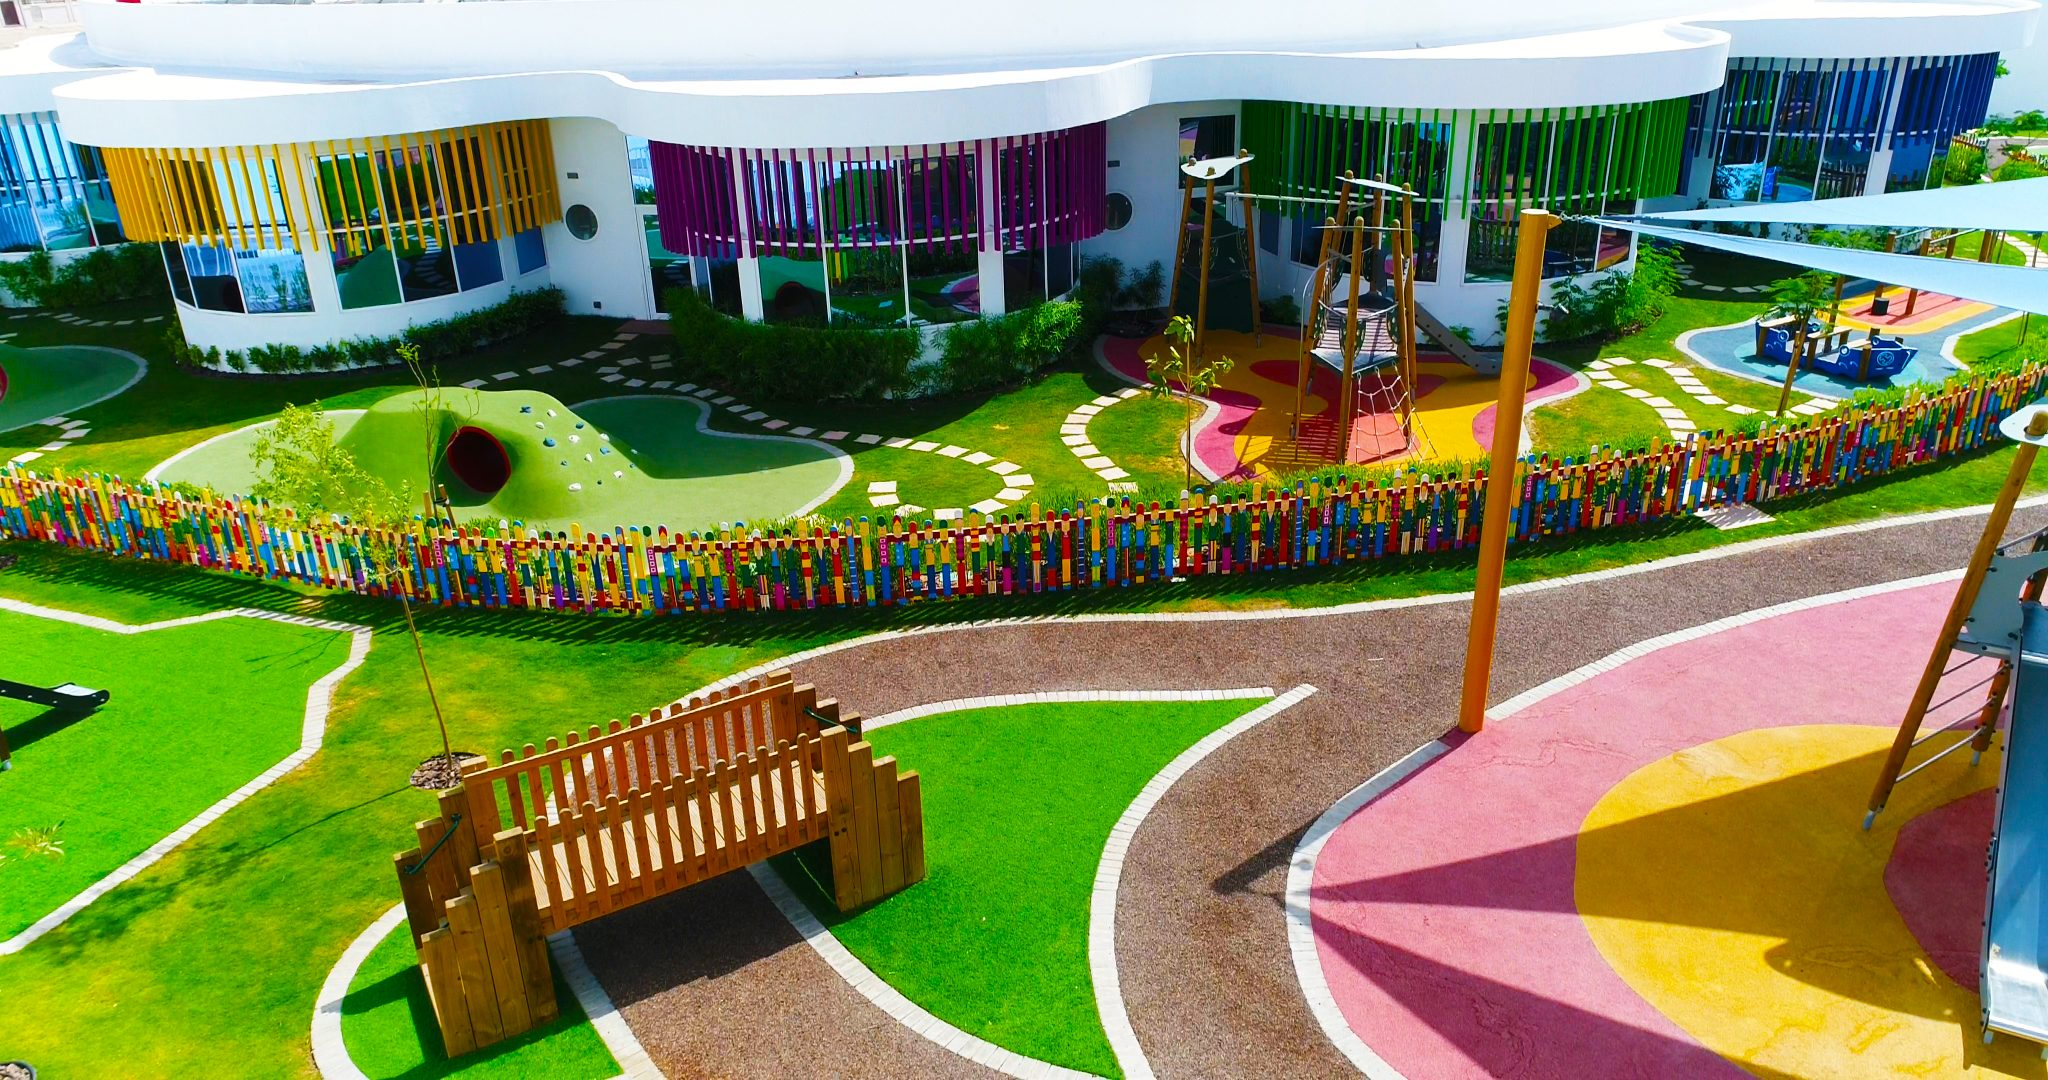 Exterior landscaping has seen major investment at Dubai Heights Academy to create an inspirational learning environment for children and to aid accessibility for all children